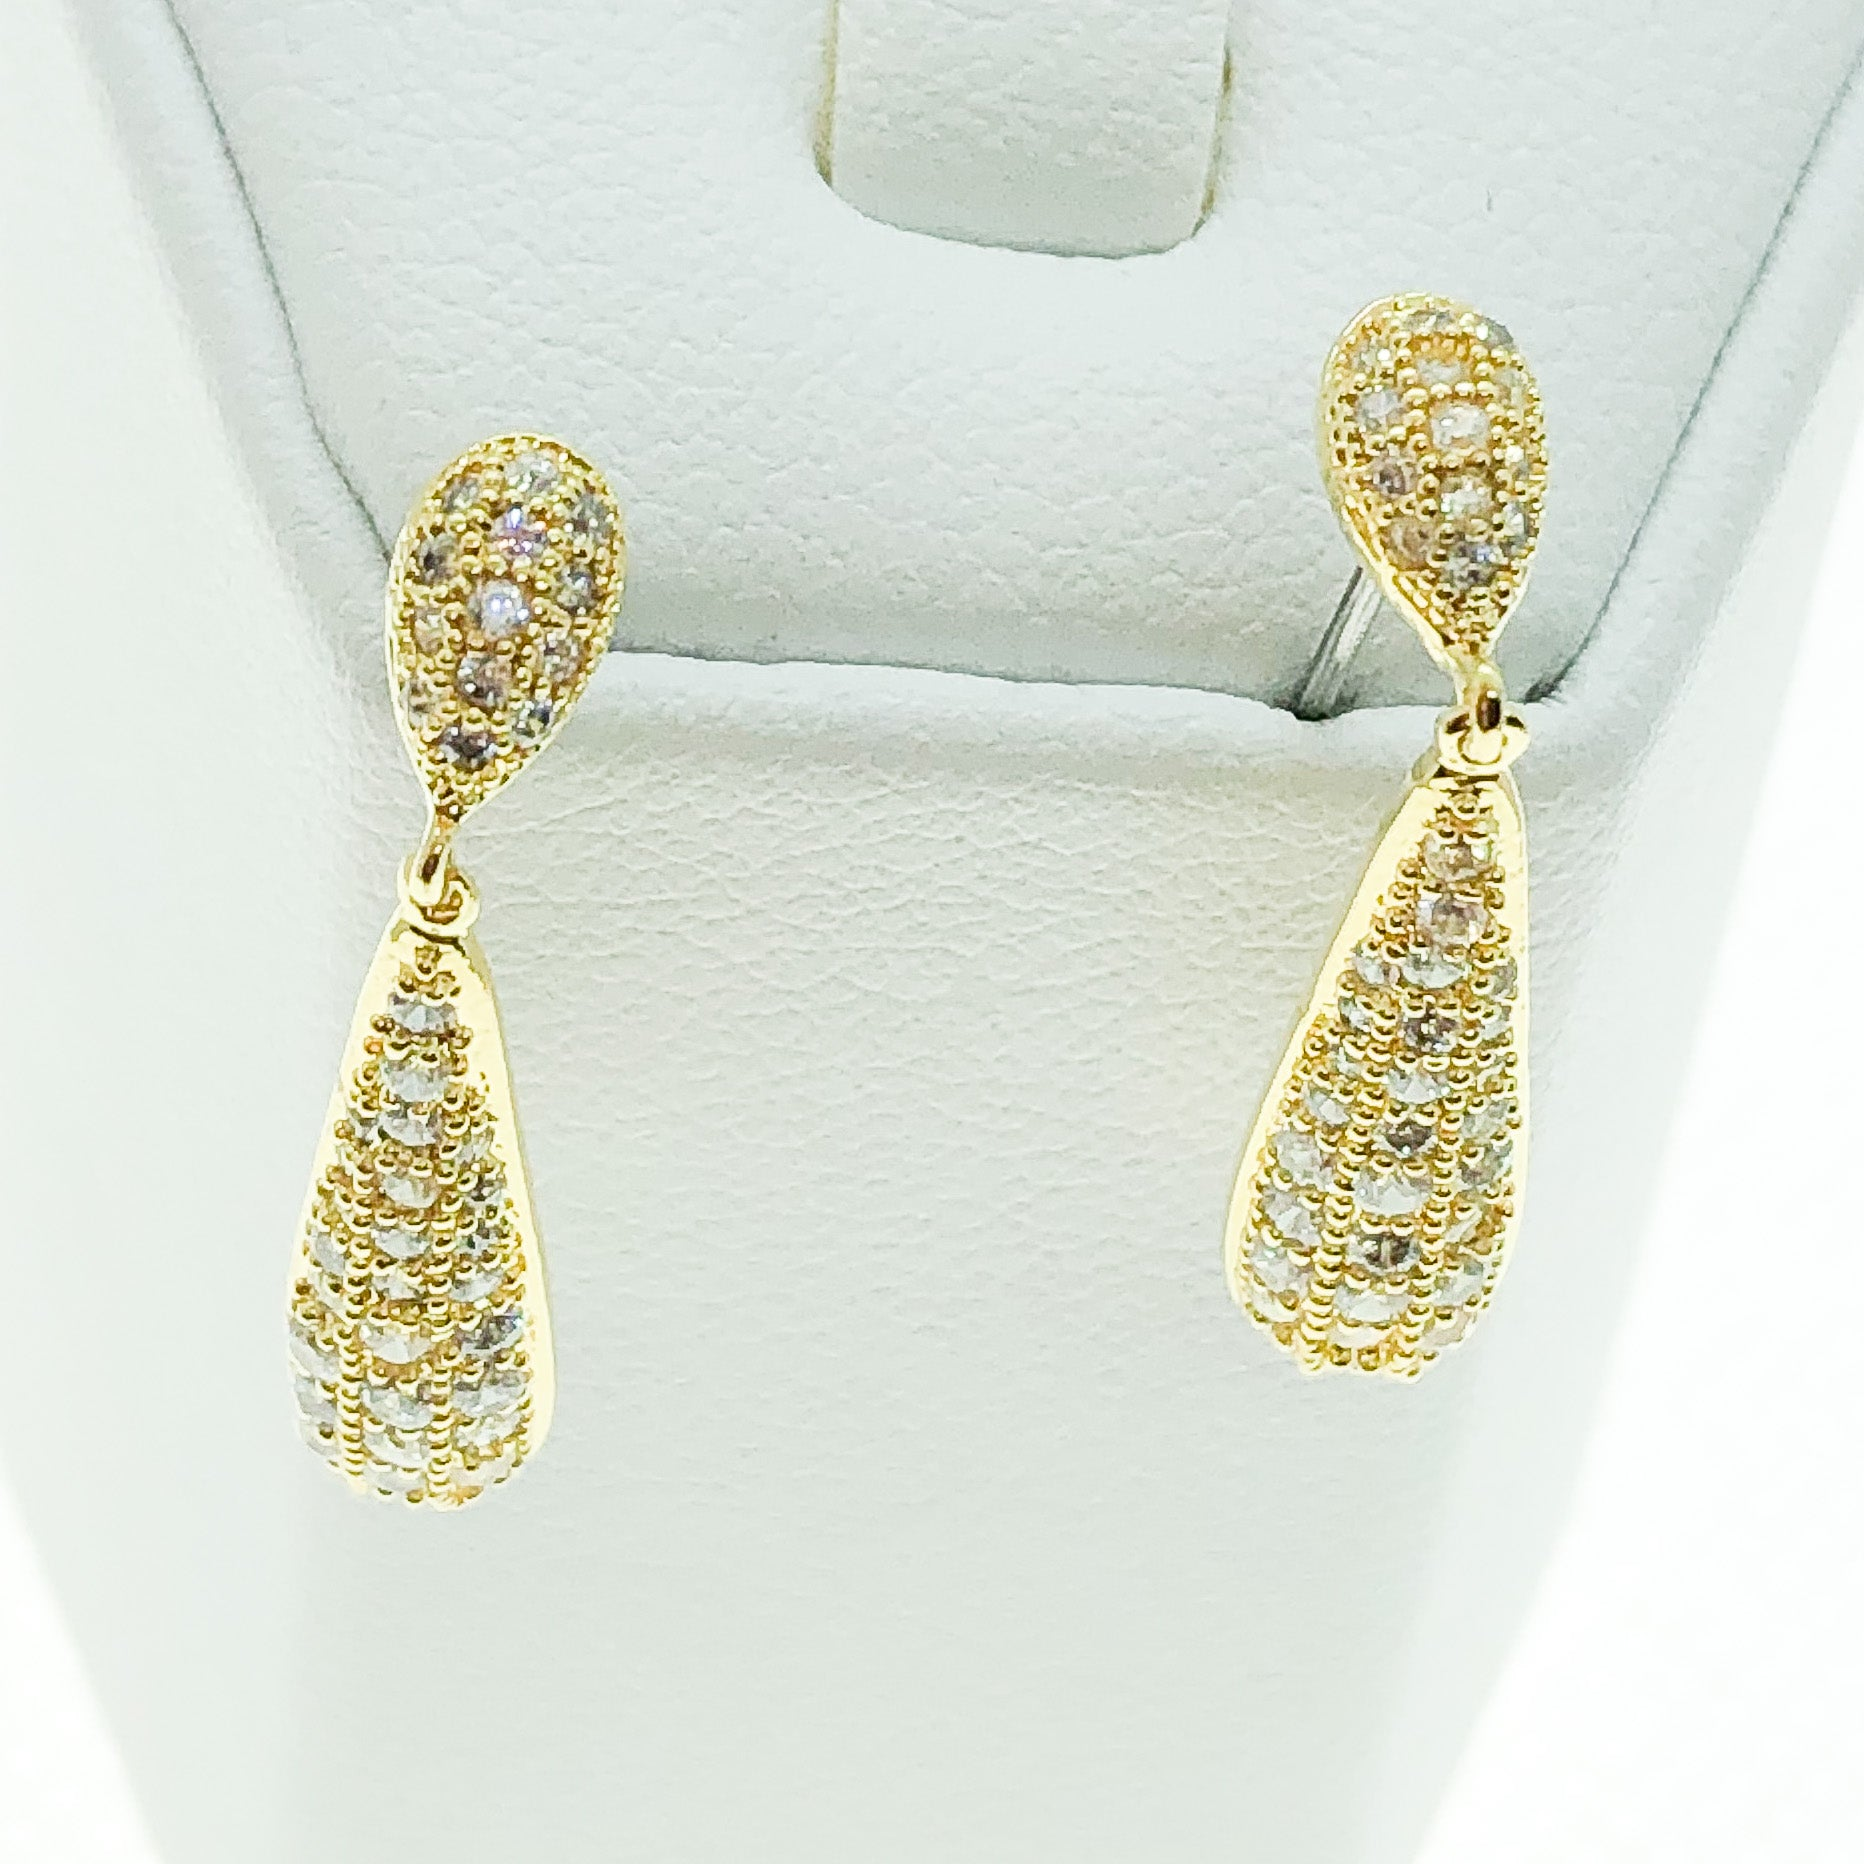 ID: E3771 WOMEN JEWELRY 18K YELLOW GOLD GF SHINING CLEAR ROUND STONES ETERNITY EARRINGS FASHION LADY DROP DANGLE